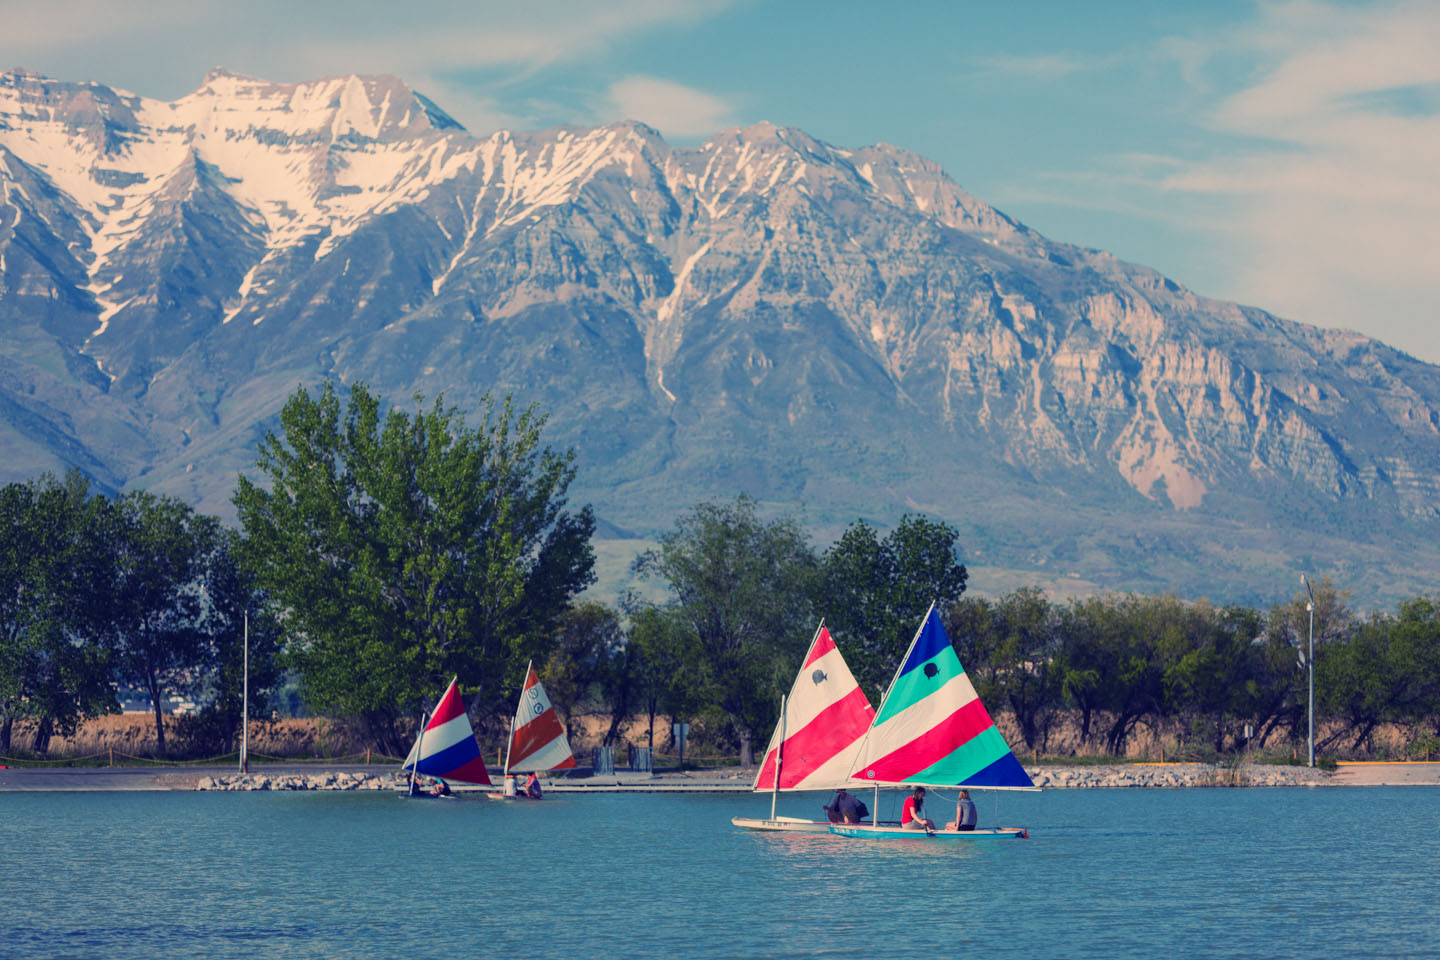 Timpanogos mountains in the background as people sail their boats